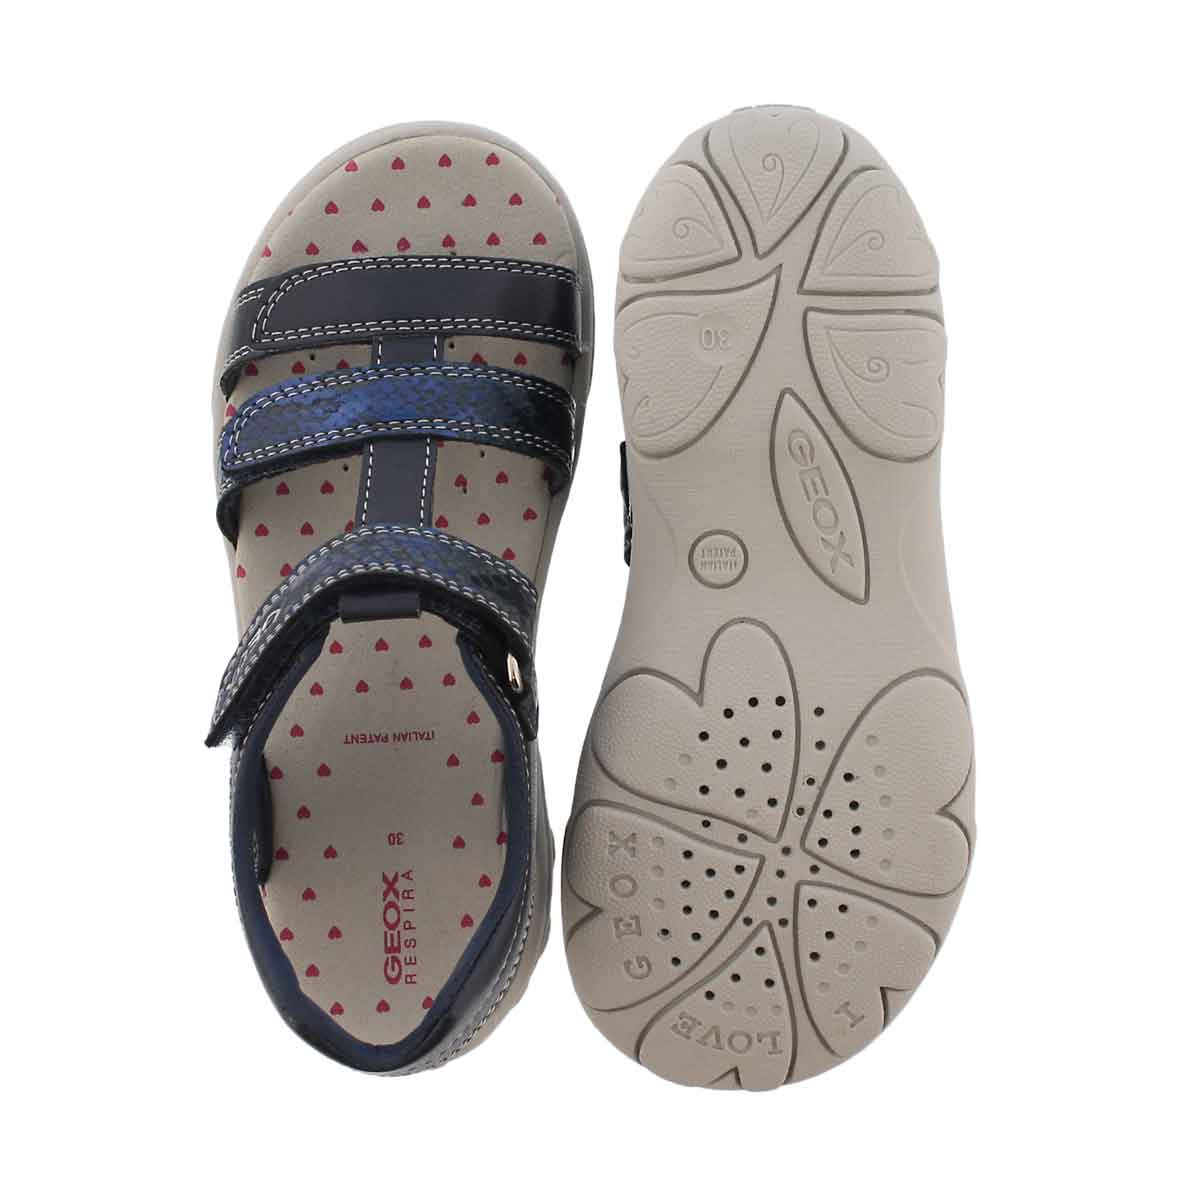 Grls Jr Cuore navy casual sandal